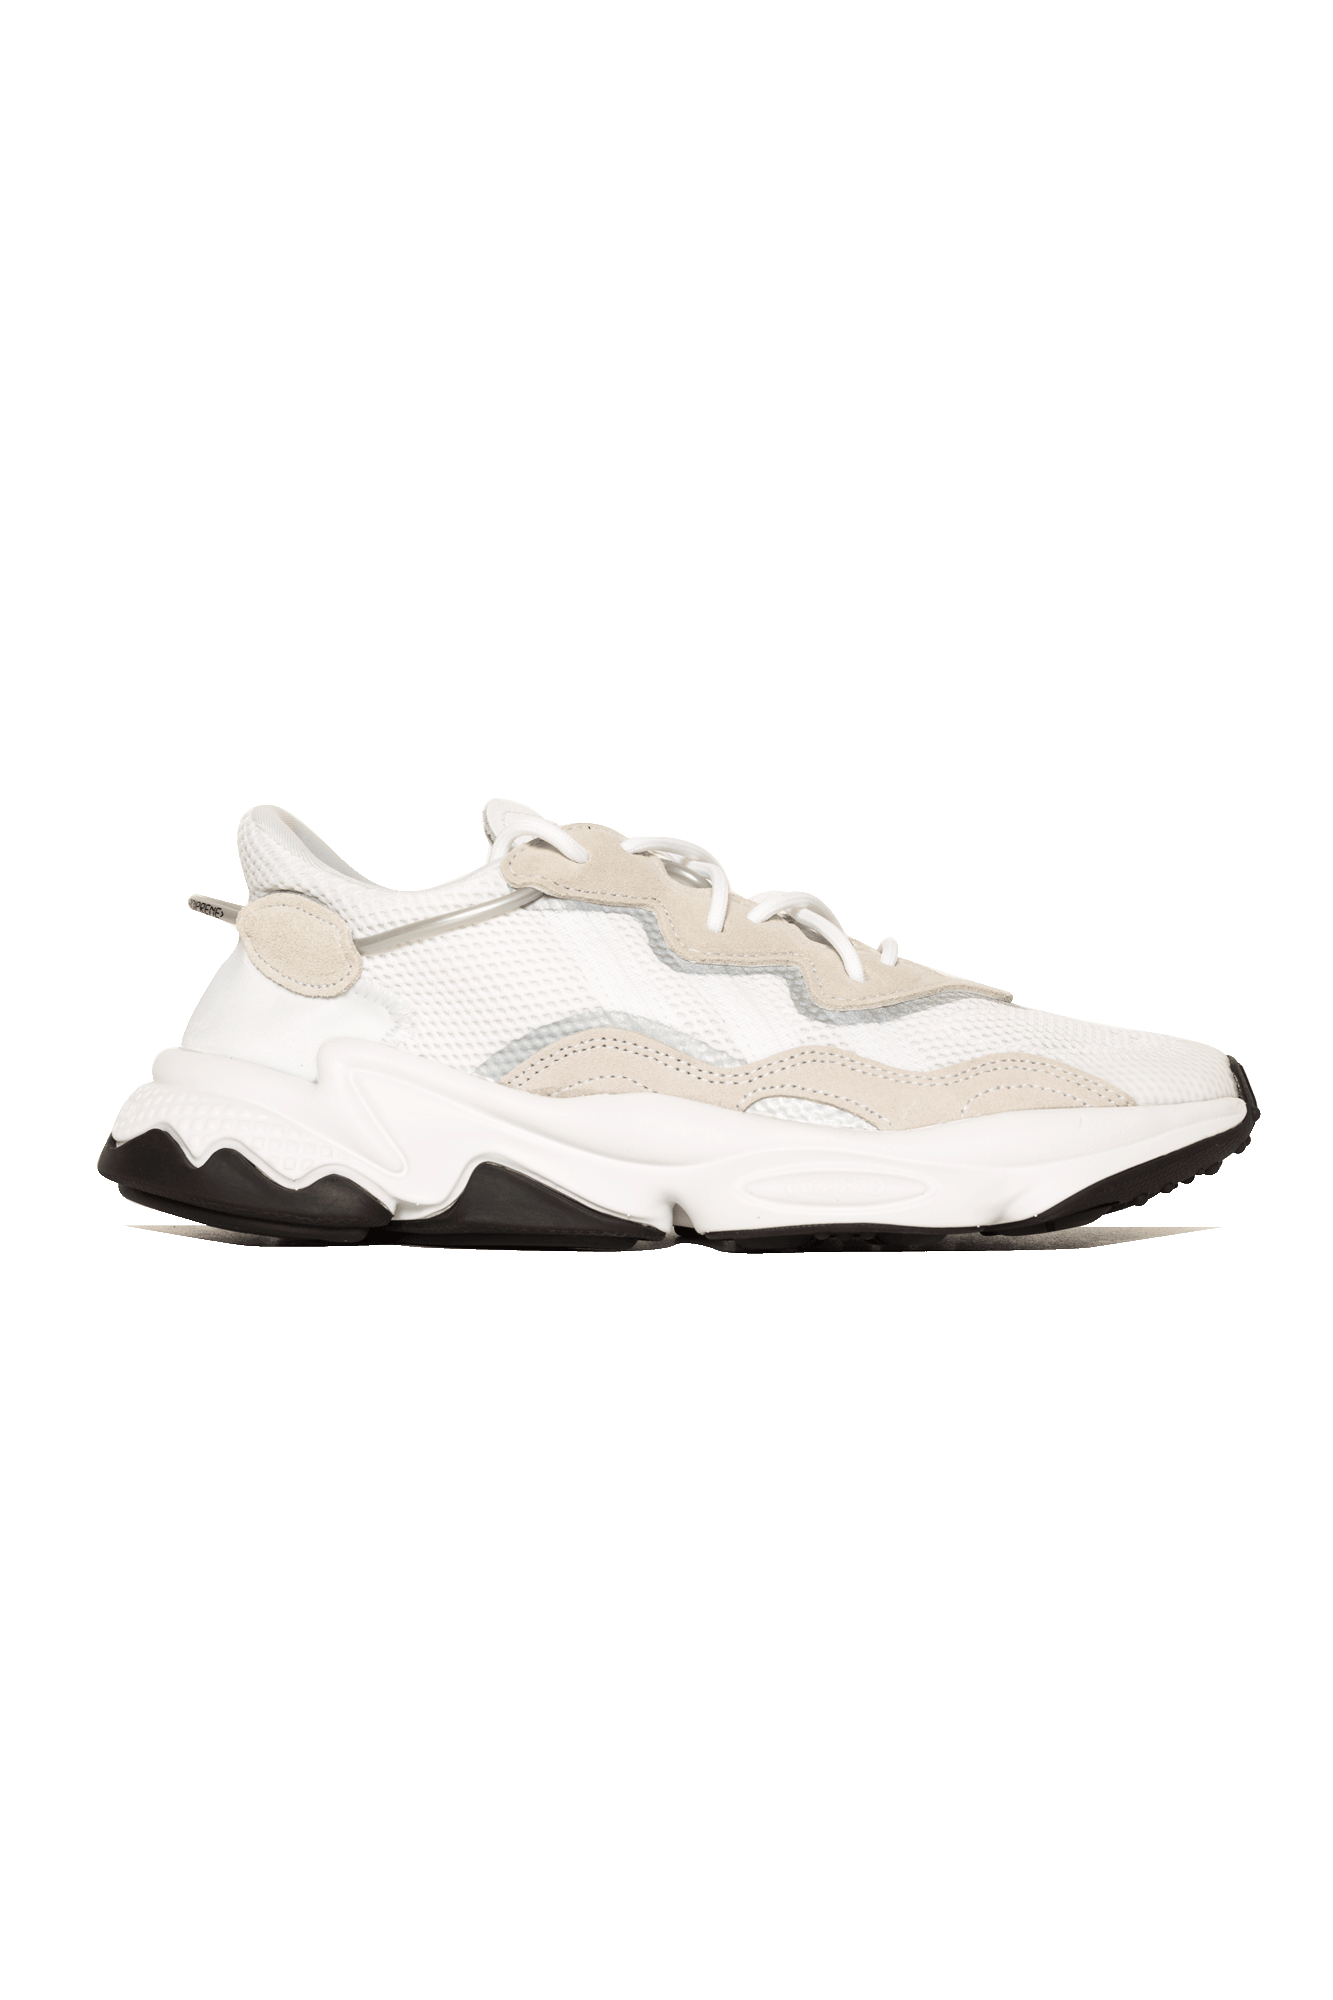 Sneakers Adidas Originals Ozweego White - One Block Down